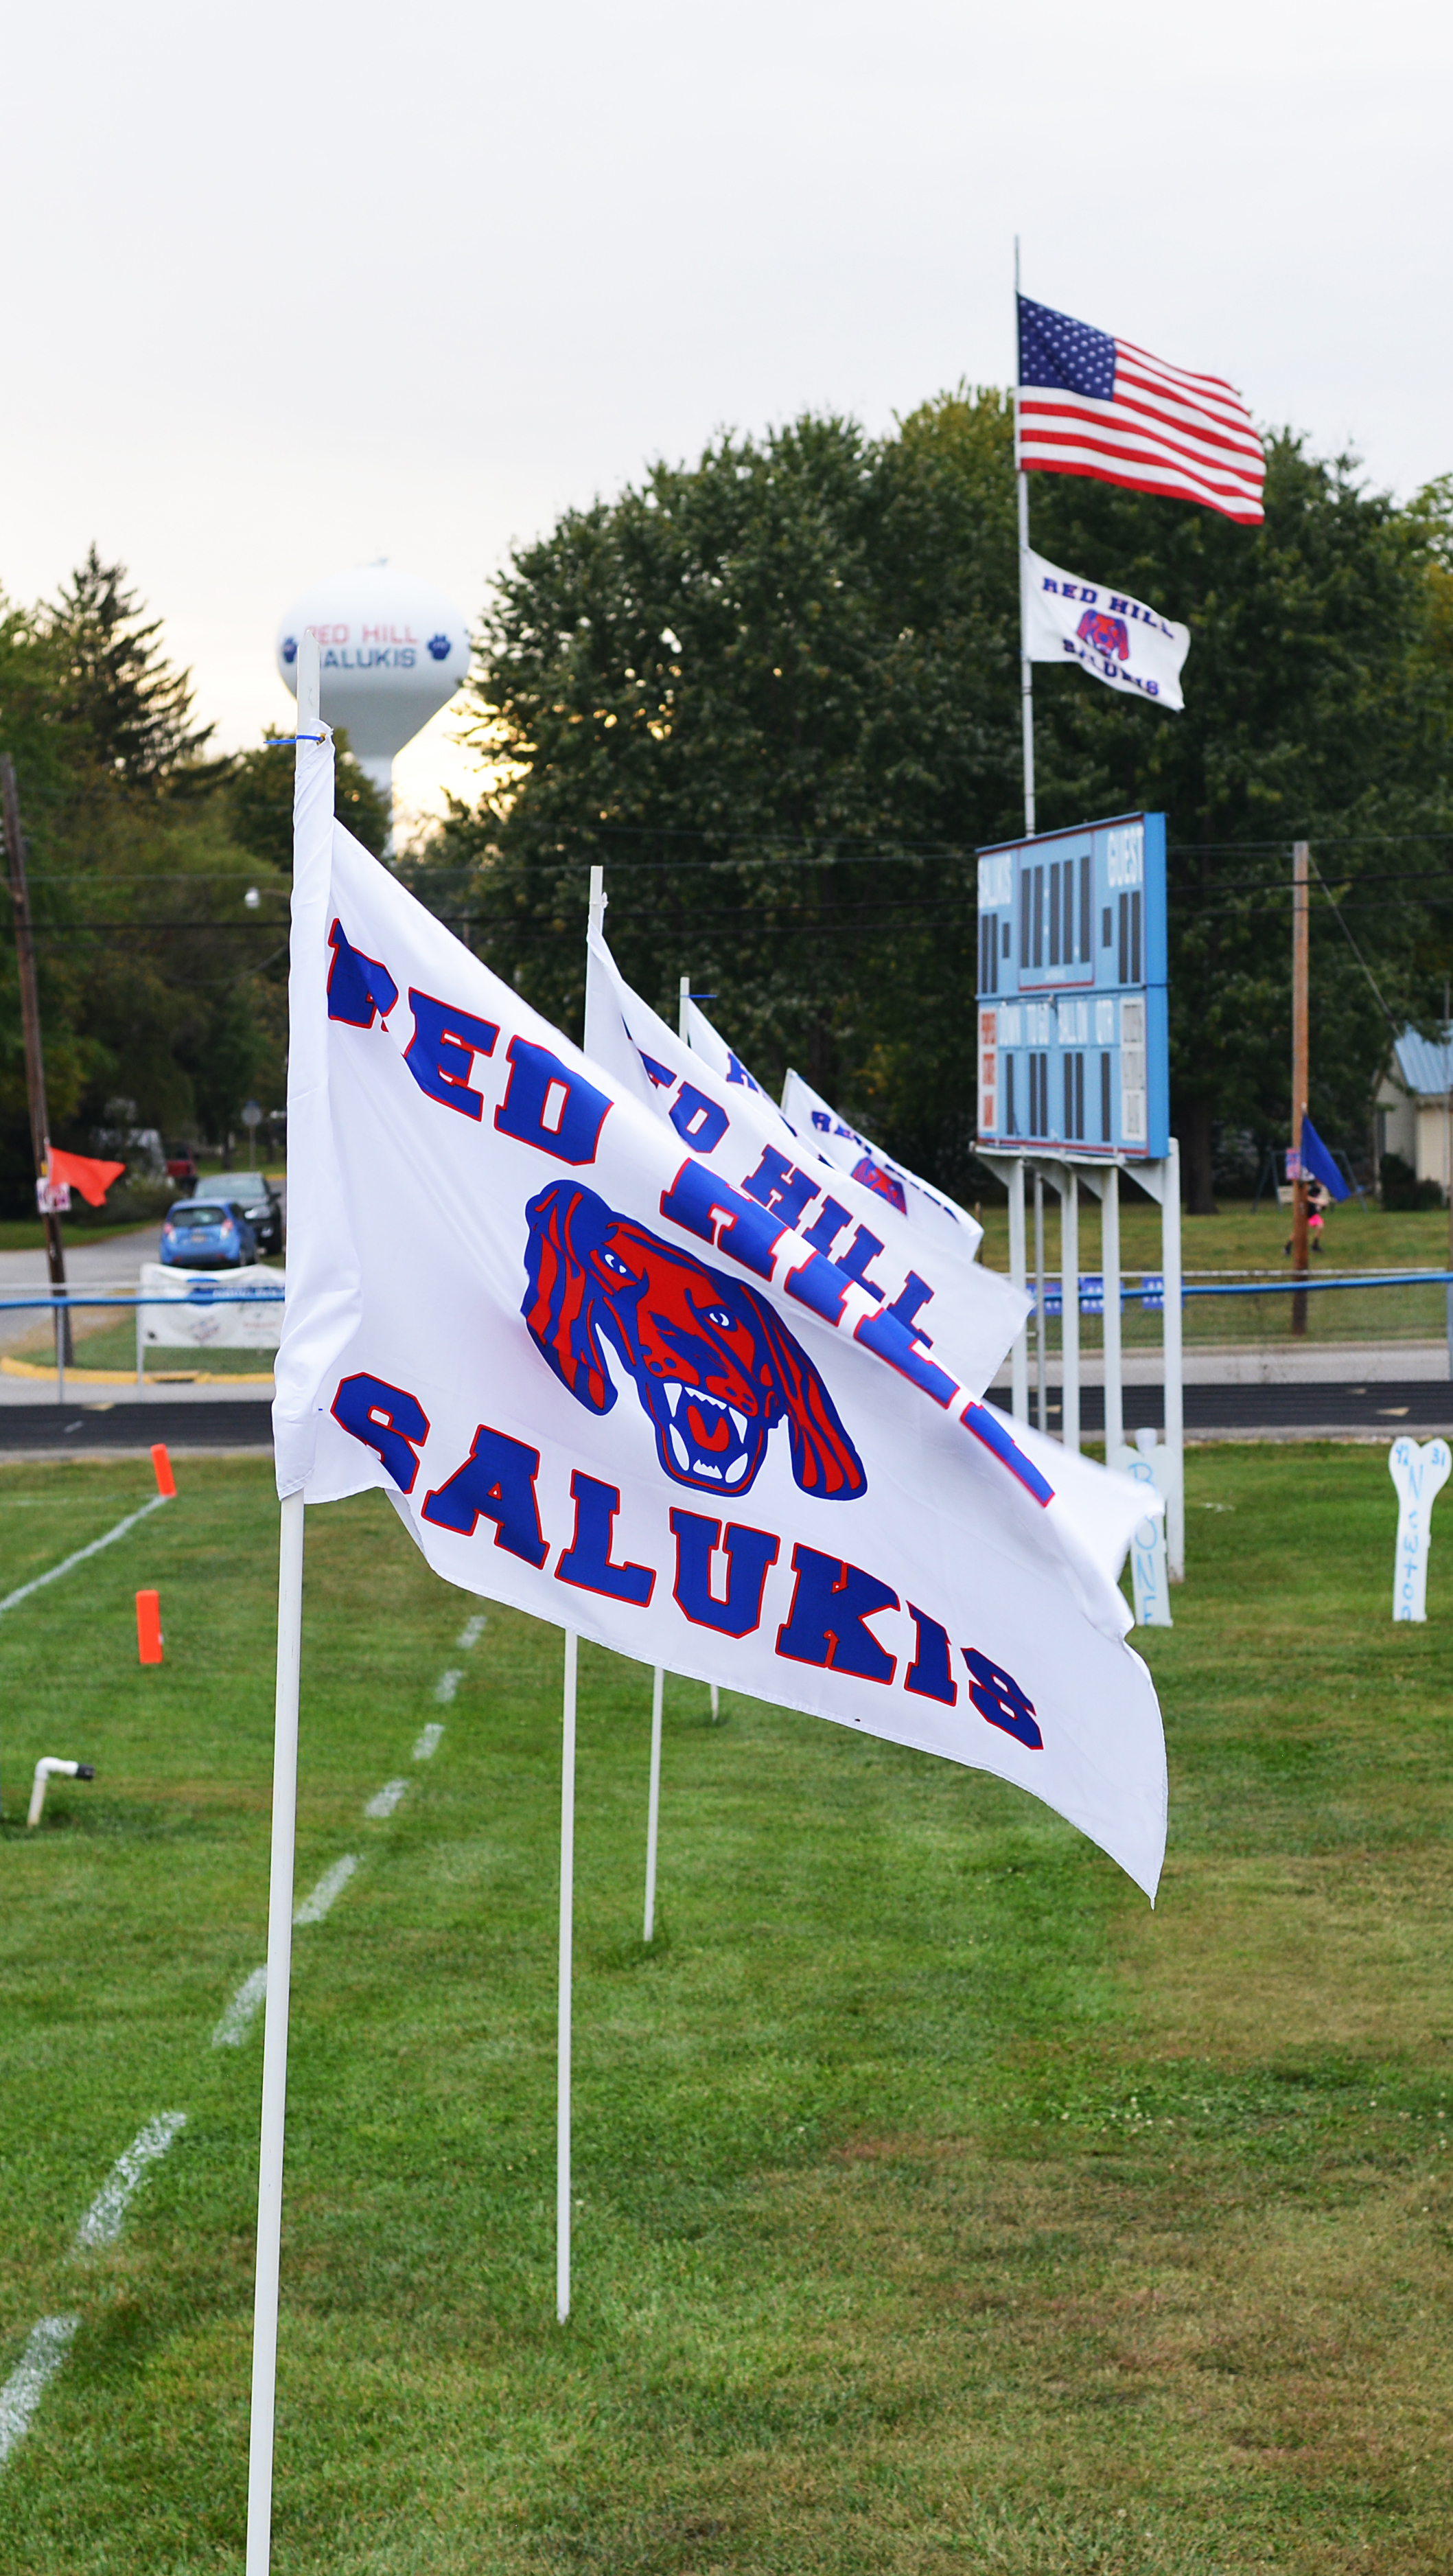 White and Blue Red Hill Salukis Flags